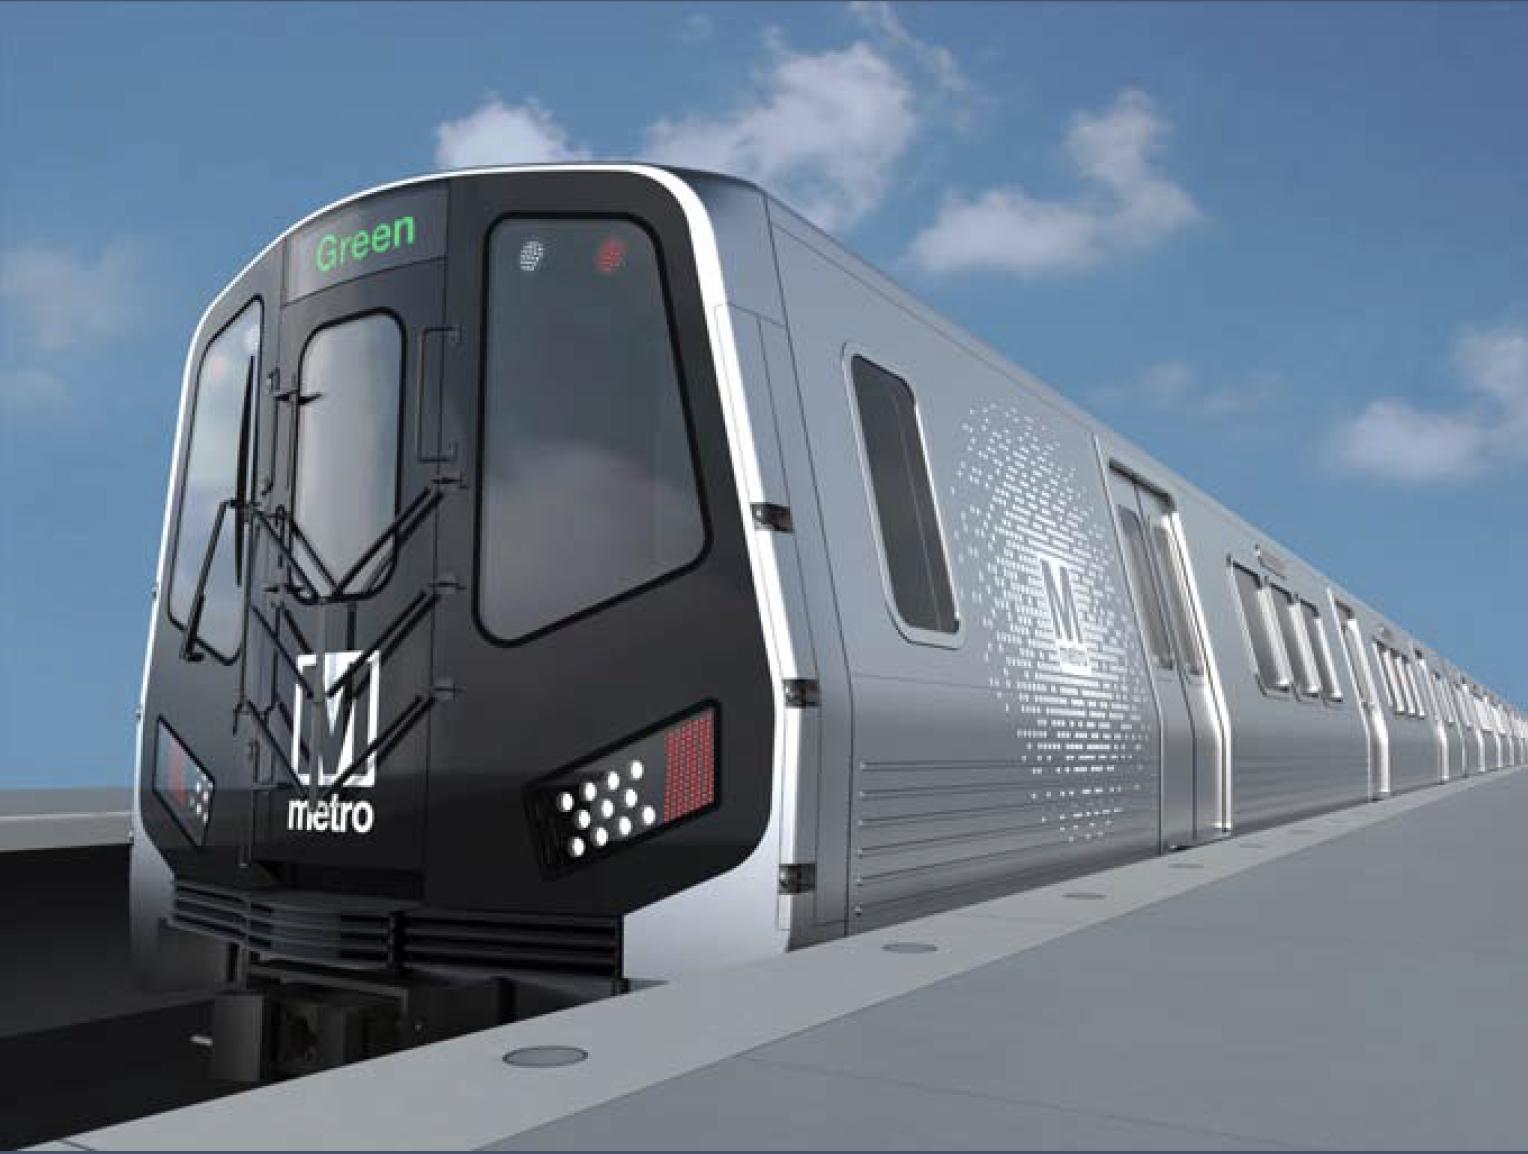 Exterior rendering of railcar for Washington Metropolitan Area Transit Authority